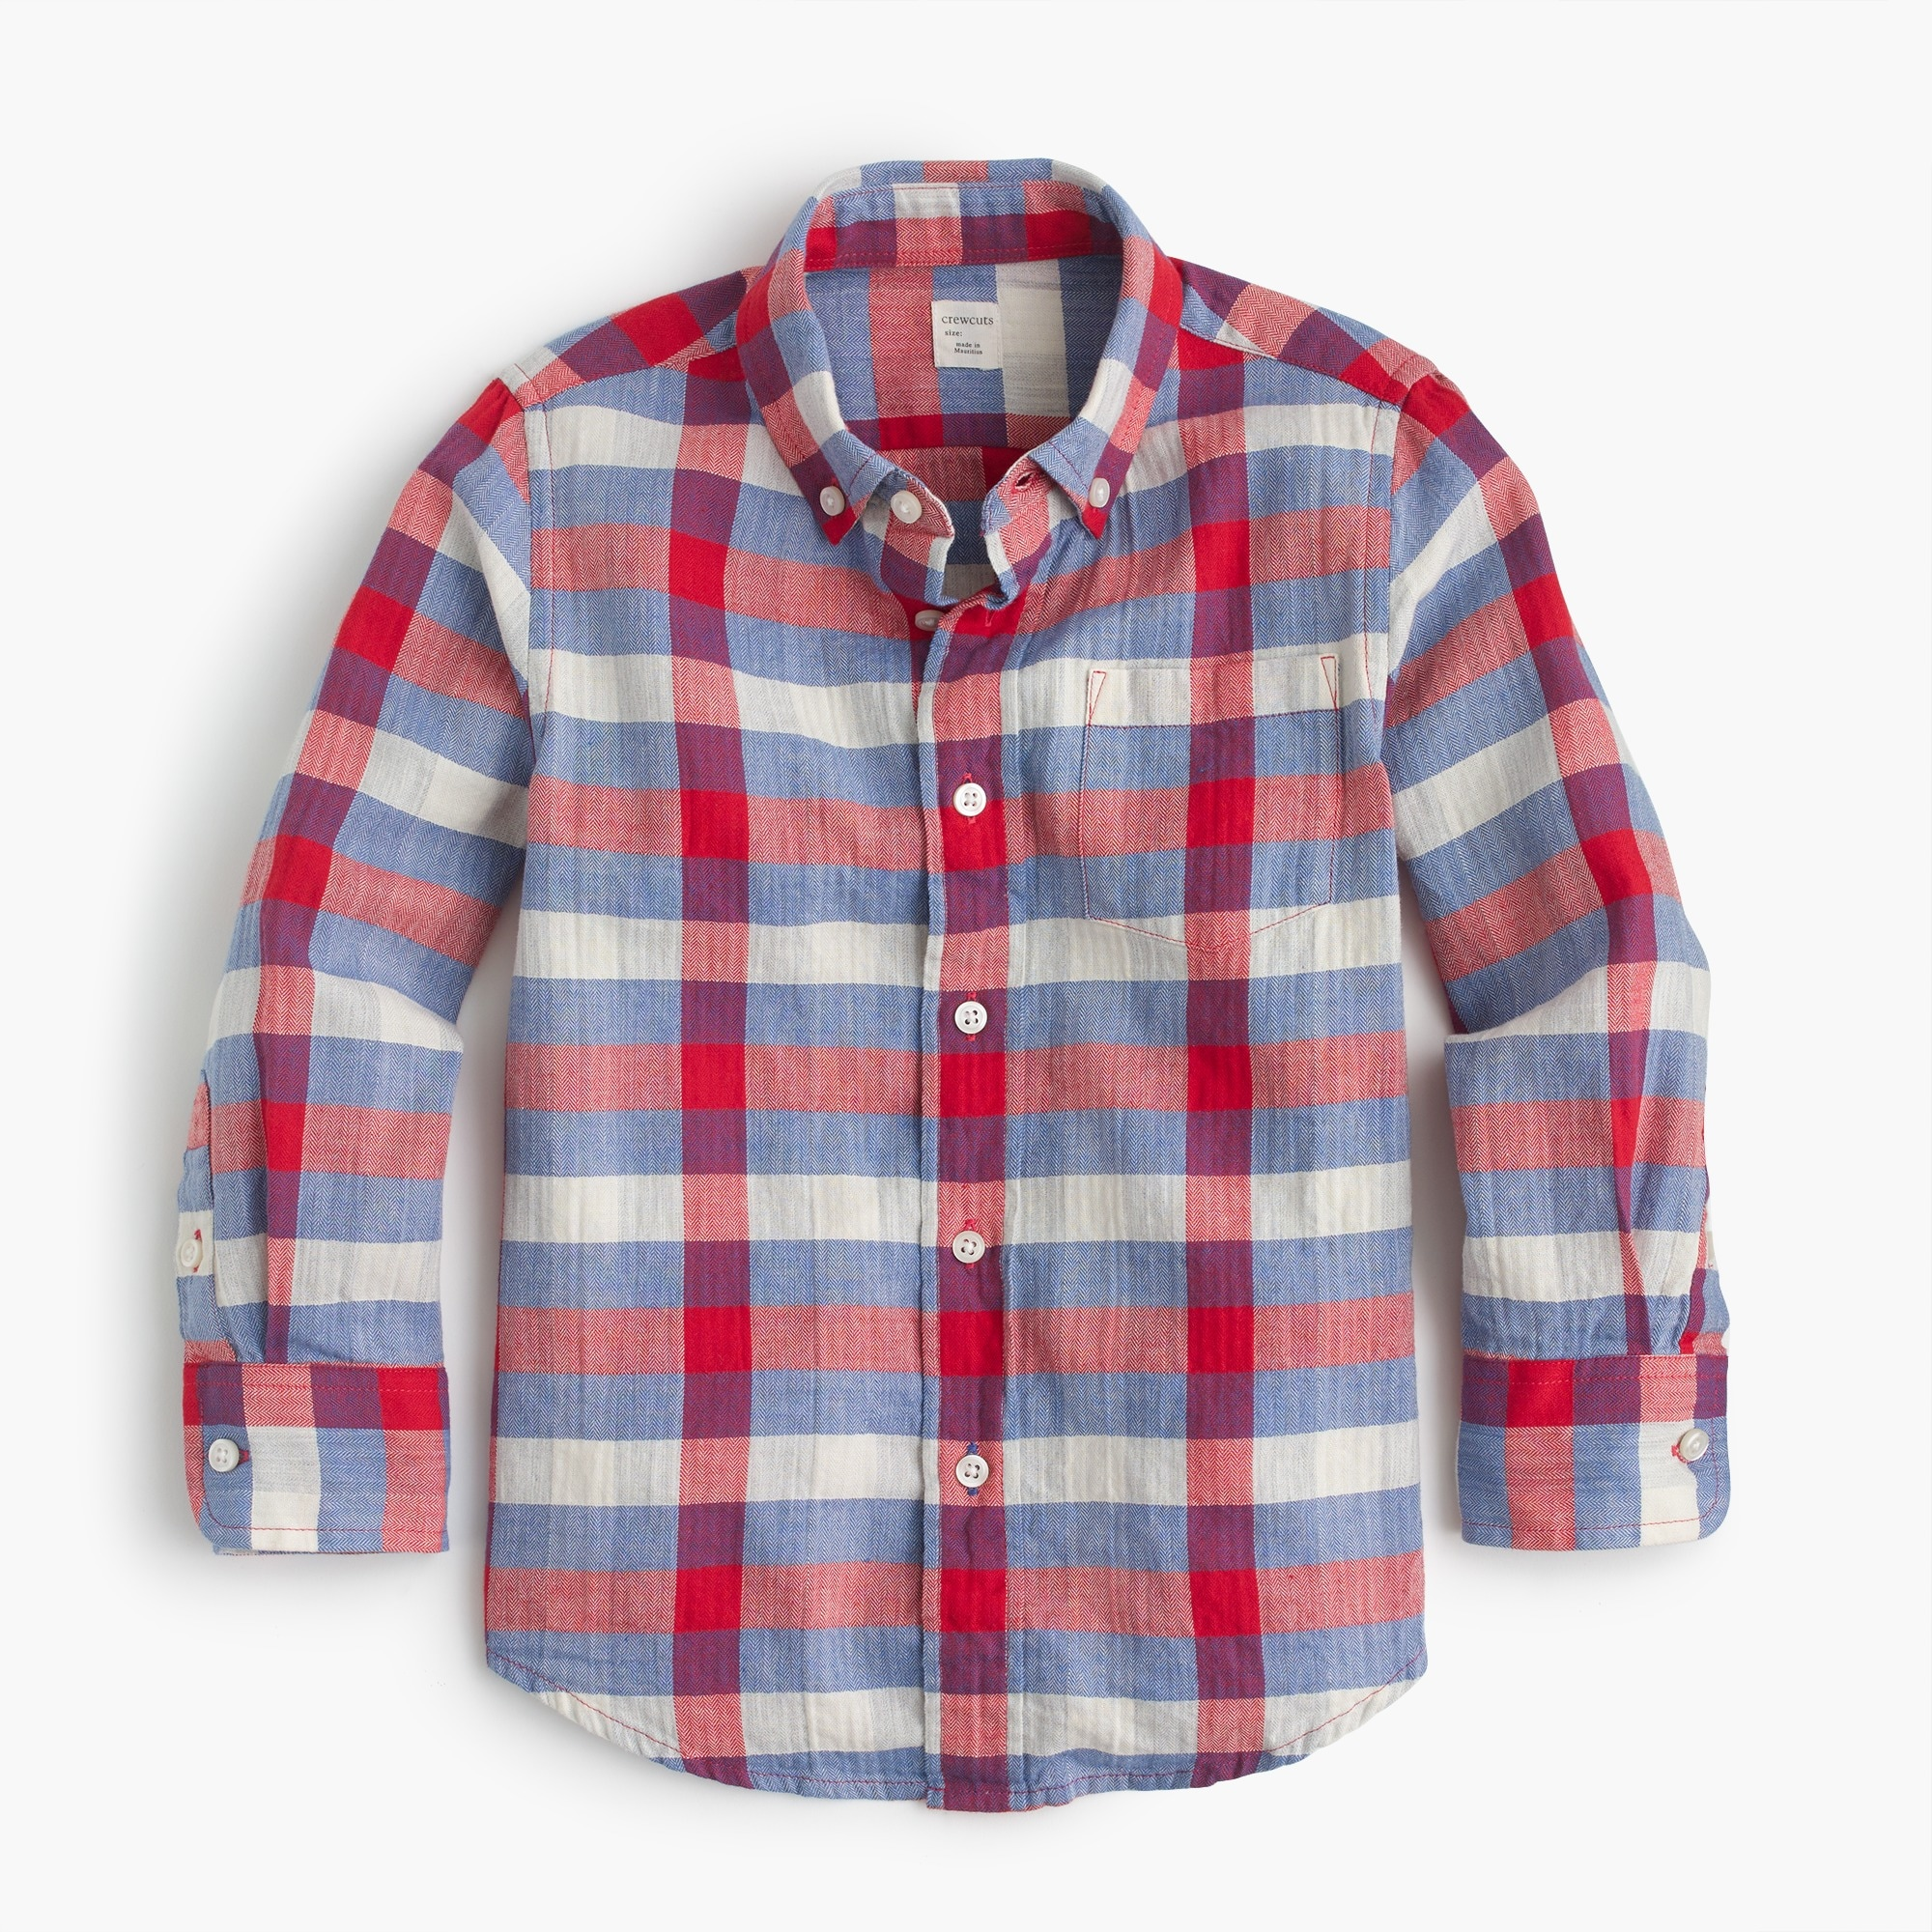 Image 1 for Kids' flannel shirt in herringbone plaid